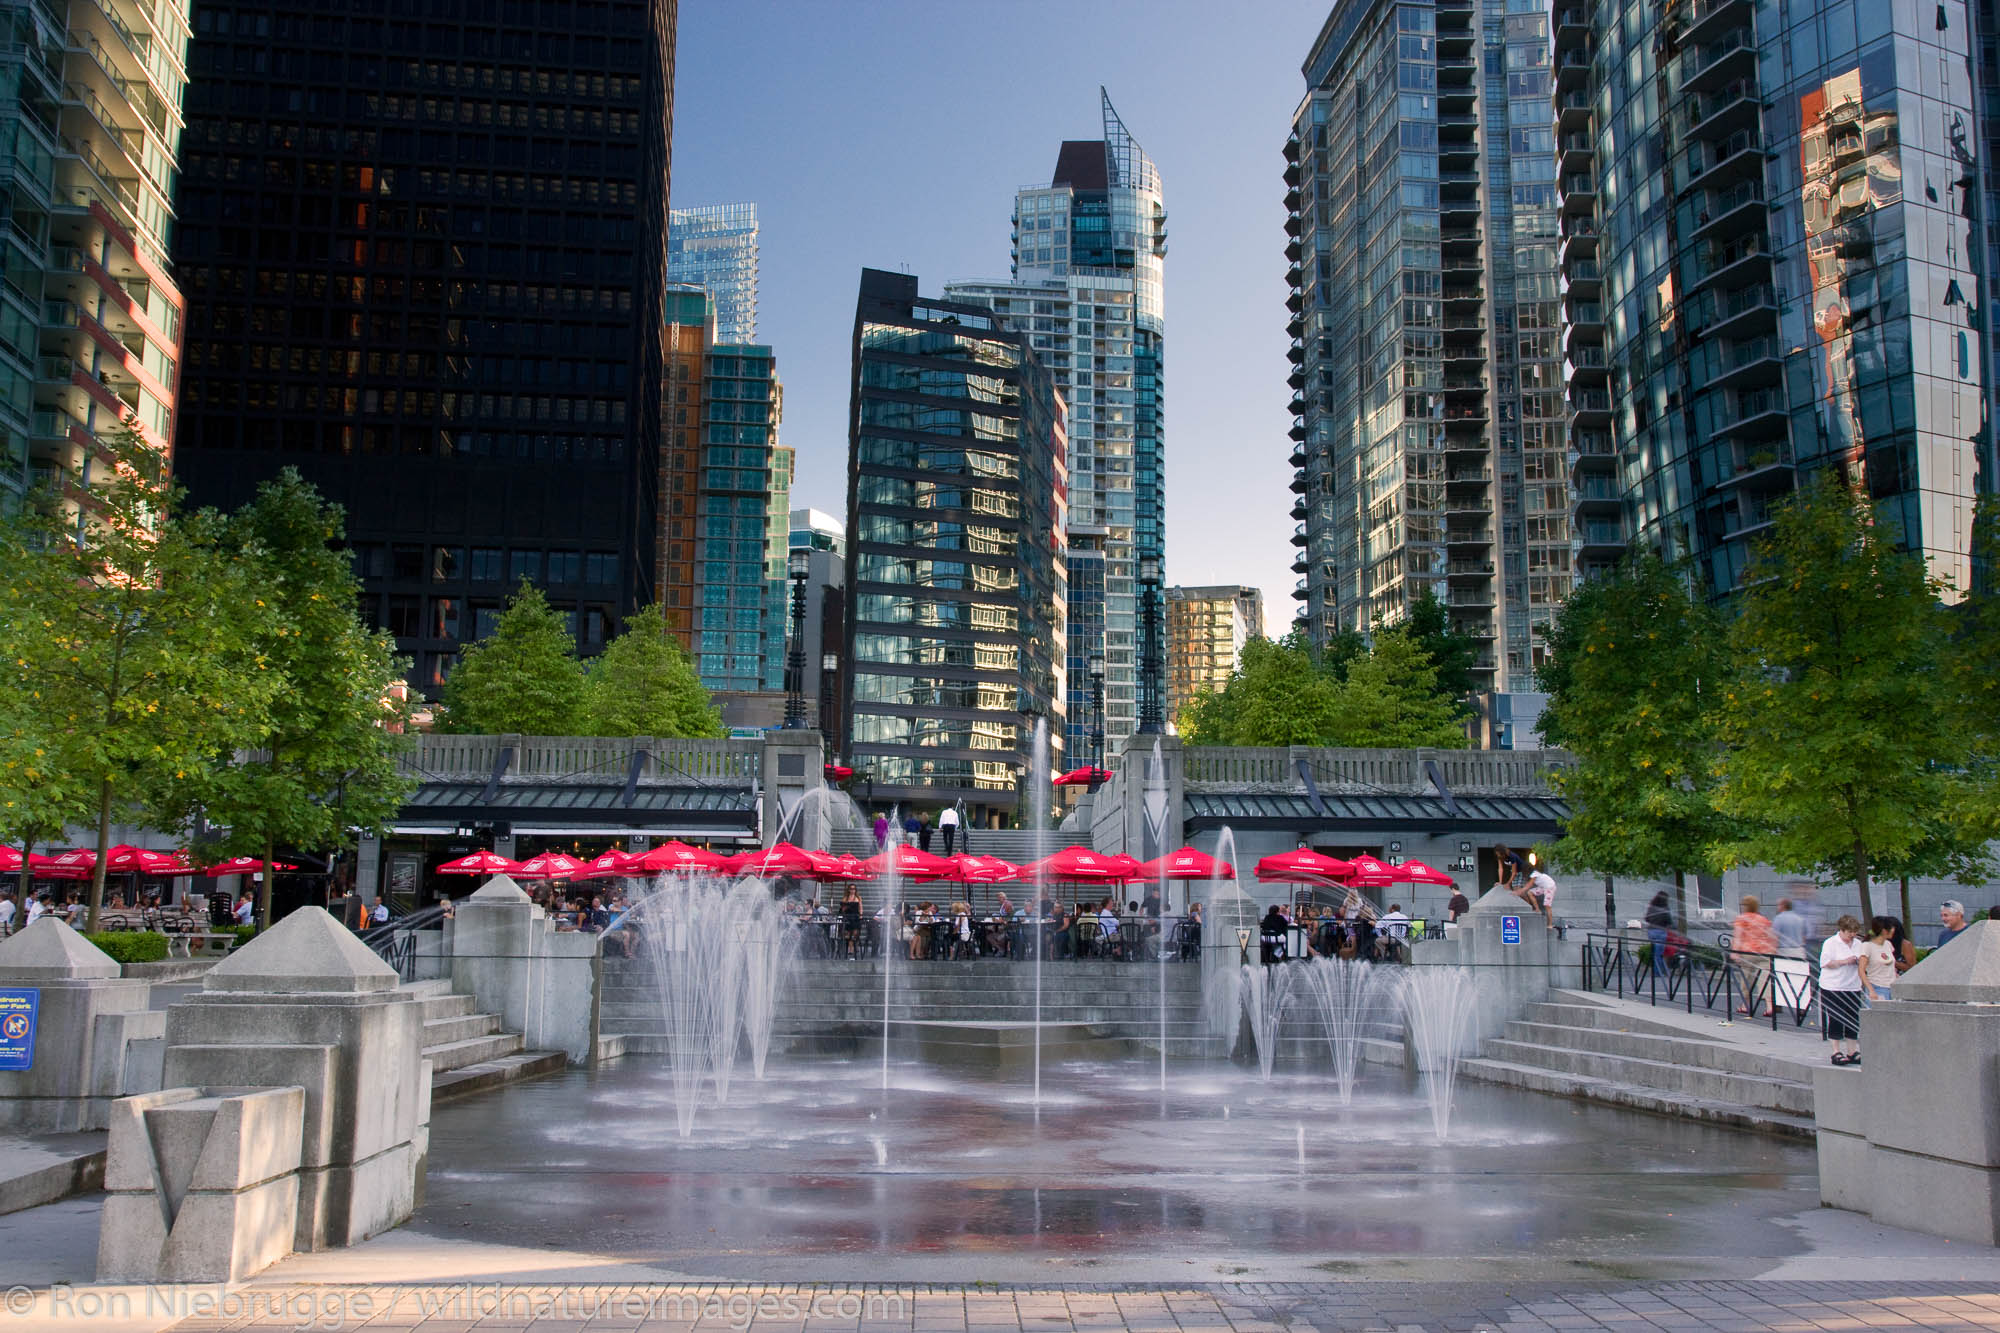 Water Fountains at The Mill, Vancouver, British Columbia, Canada.